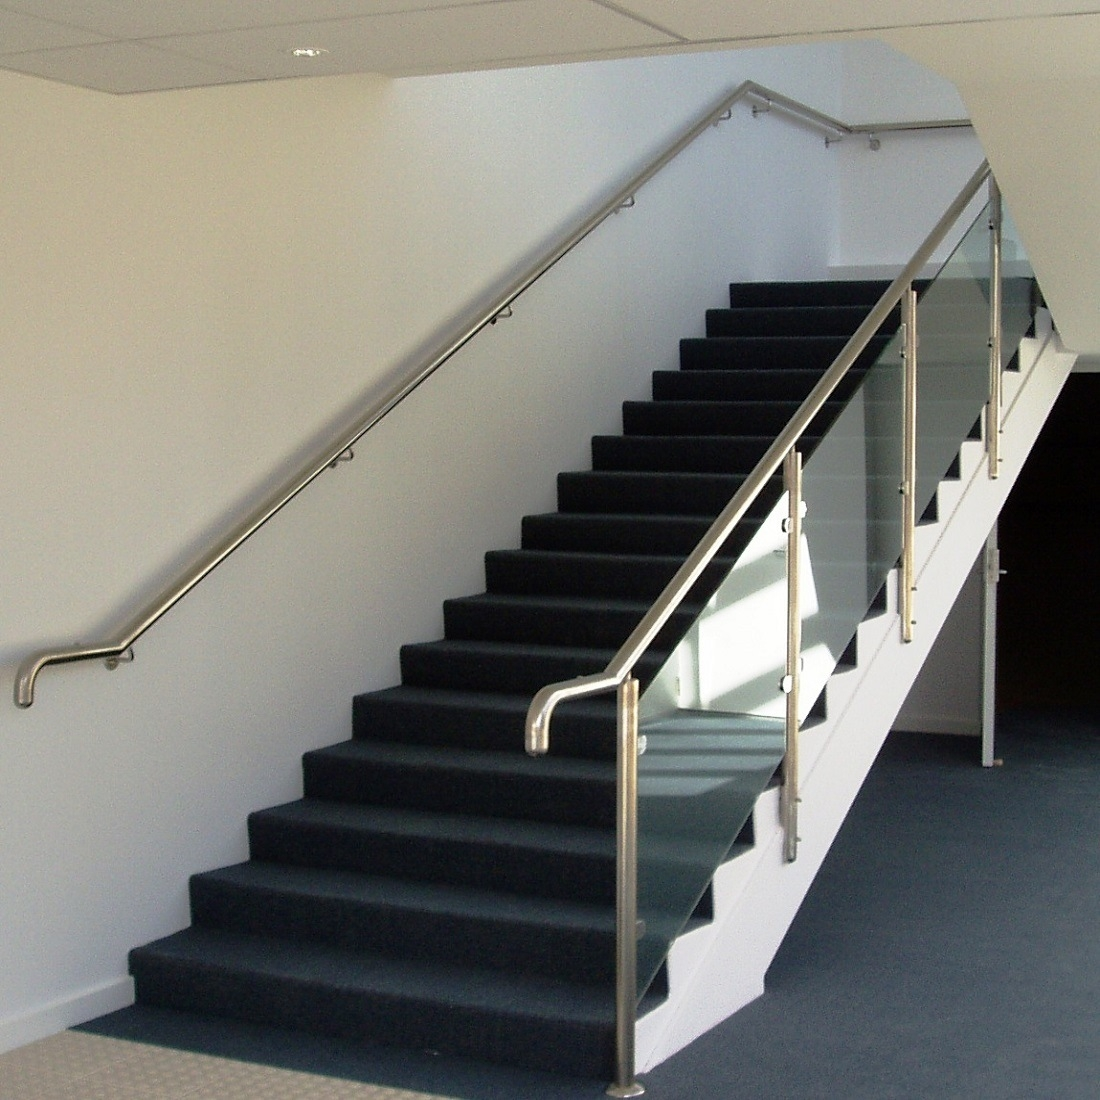 China Modern Handrail Design Indoor Stainless Steel Railing Glass | Handrails For Stairs Interior | Staircase Handrail | Rectangular Tube | Residential | Barnwood Rustic | Industrial